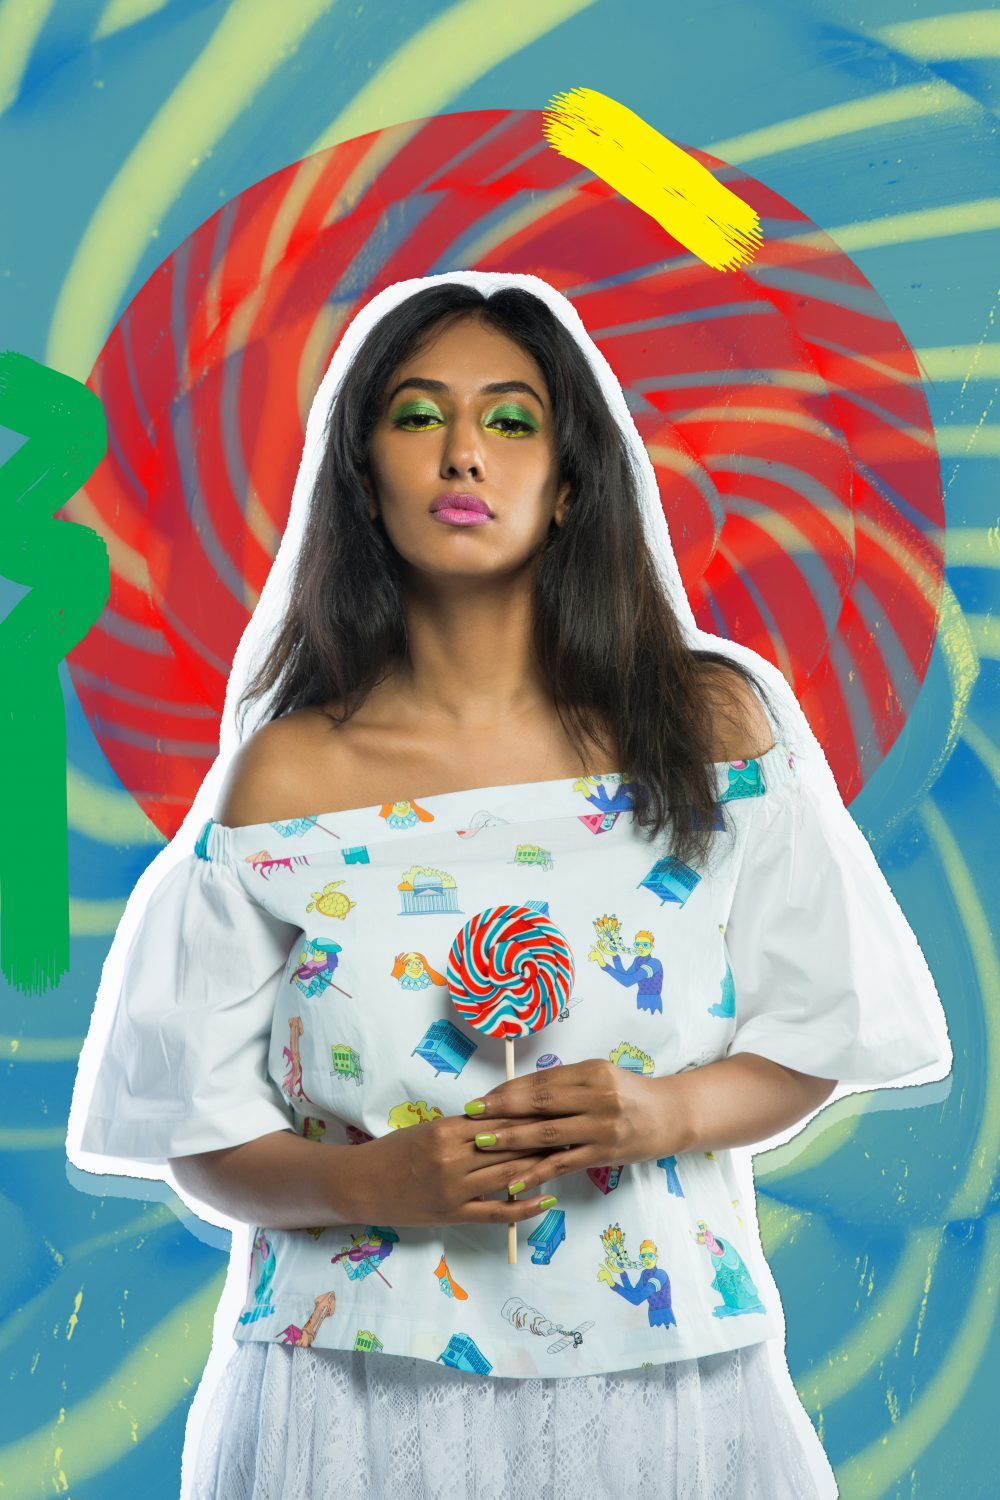 hyderabad fashion bloggers ; Quirk box Quirky colors Editorial colorful fashion photography artwork candies candy style beauty blogger hyderabad indian Naznin Suhaer I Dress for the Applause model conceptual concept vero moda koovs max fashions yellow green fun artist prints graphic artsy pop art